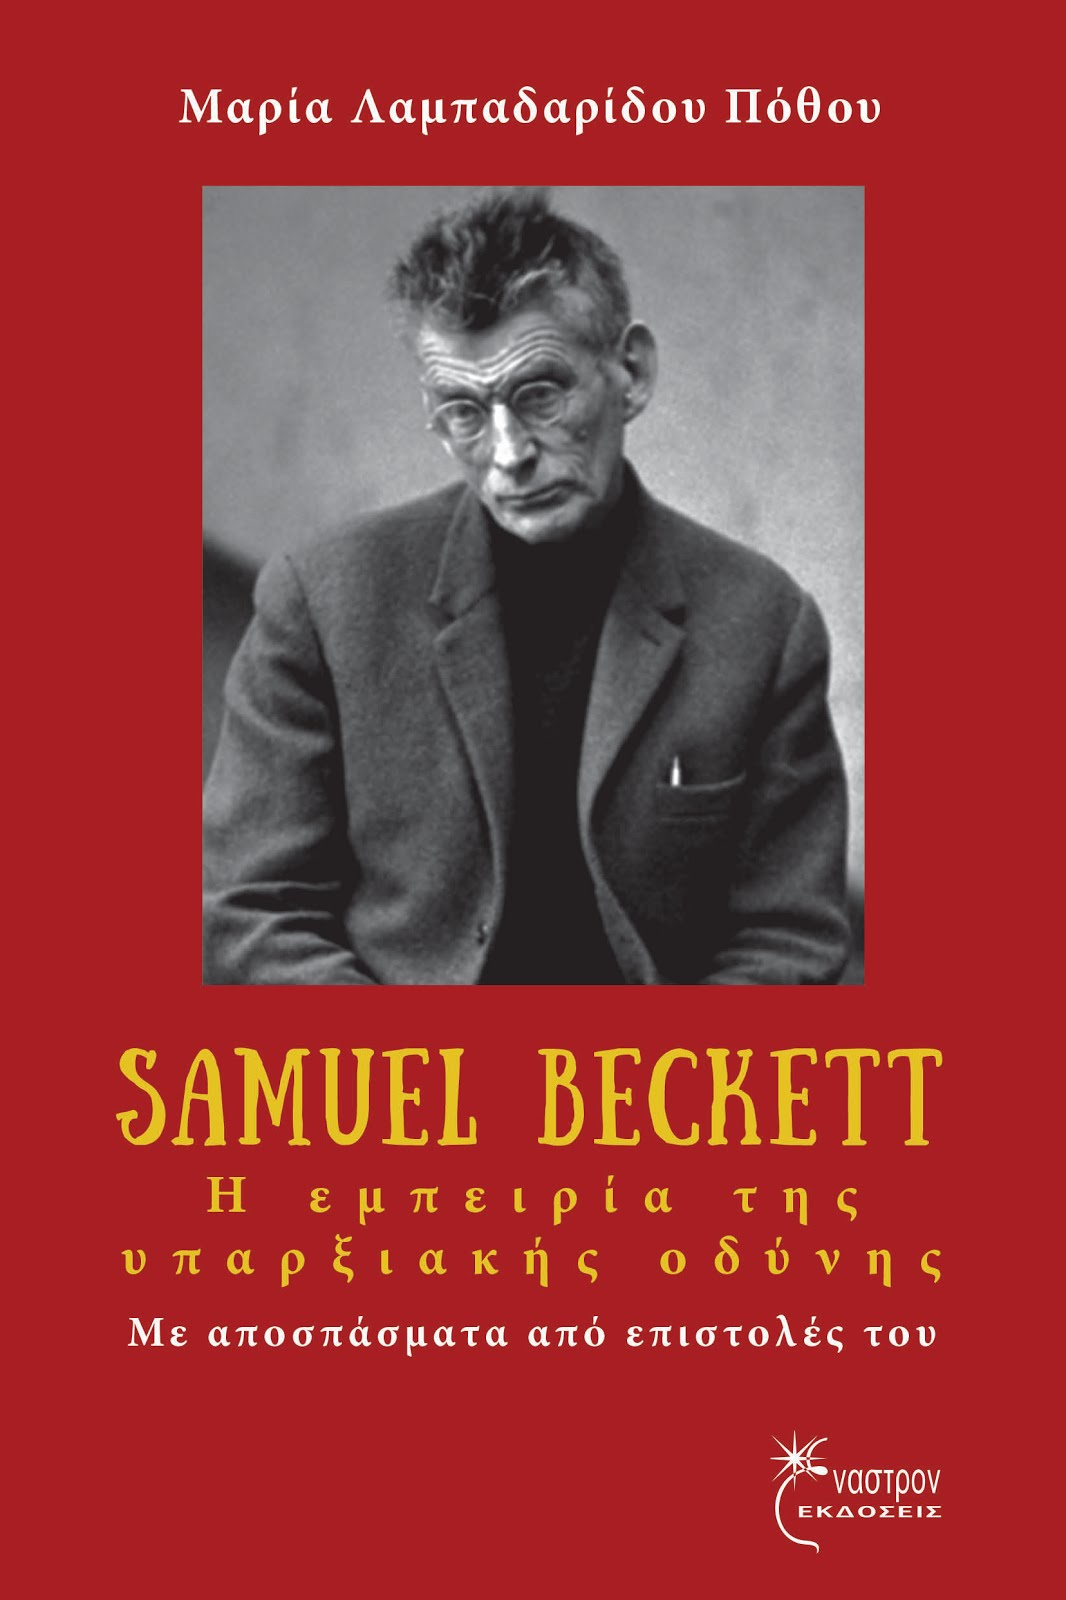 SAMUEL BECKETT - The experience of the existential Grief